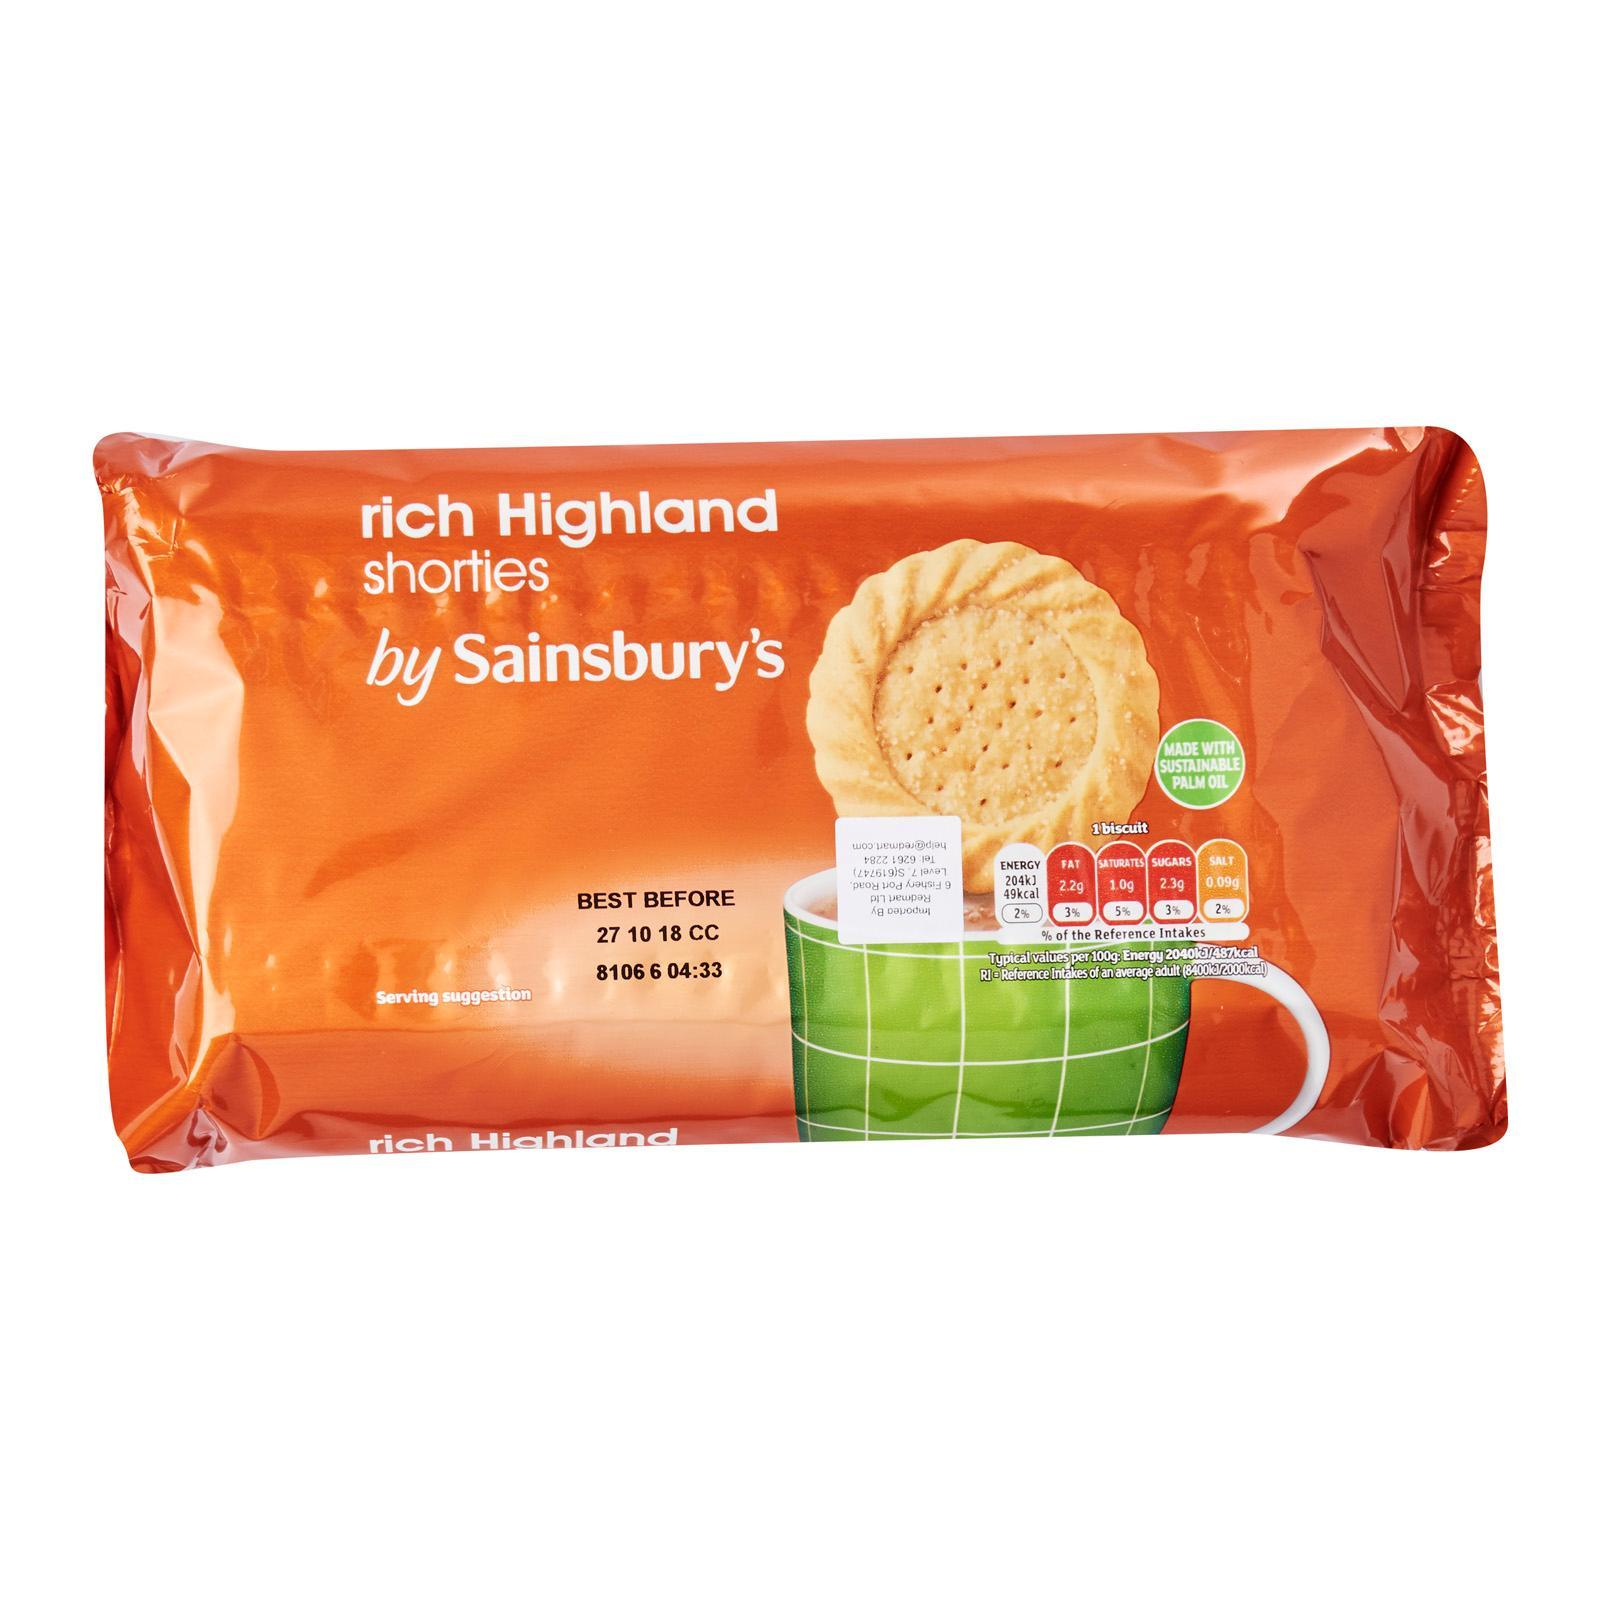 Sainsbury's Rich Highland Shorties Biscuits